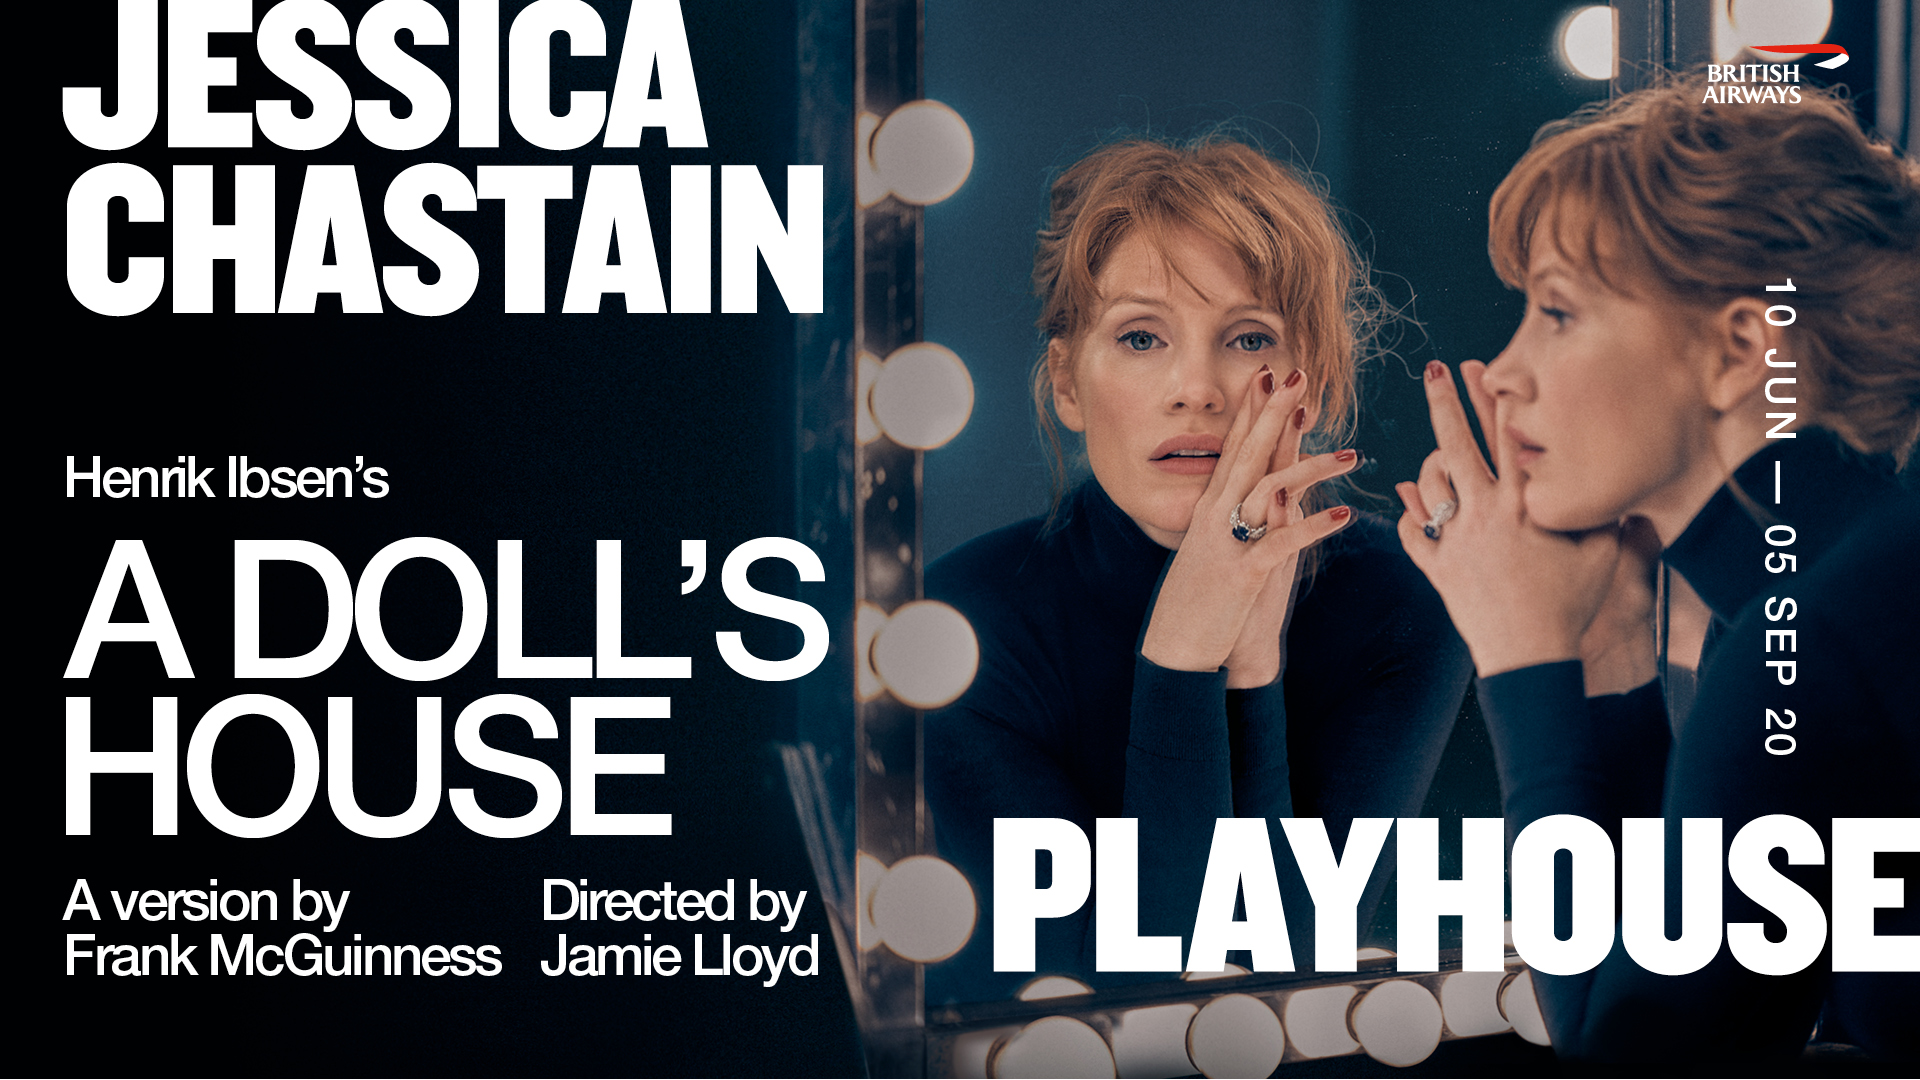 Jessica Chastain - to star in A Doll's House at the Playhouse Theatre